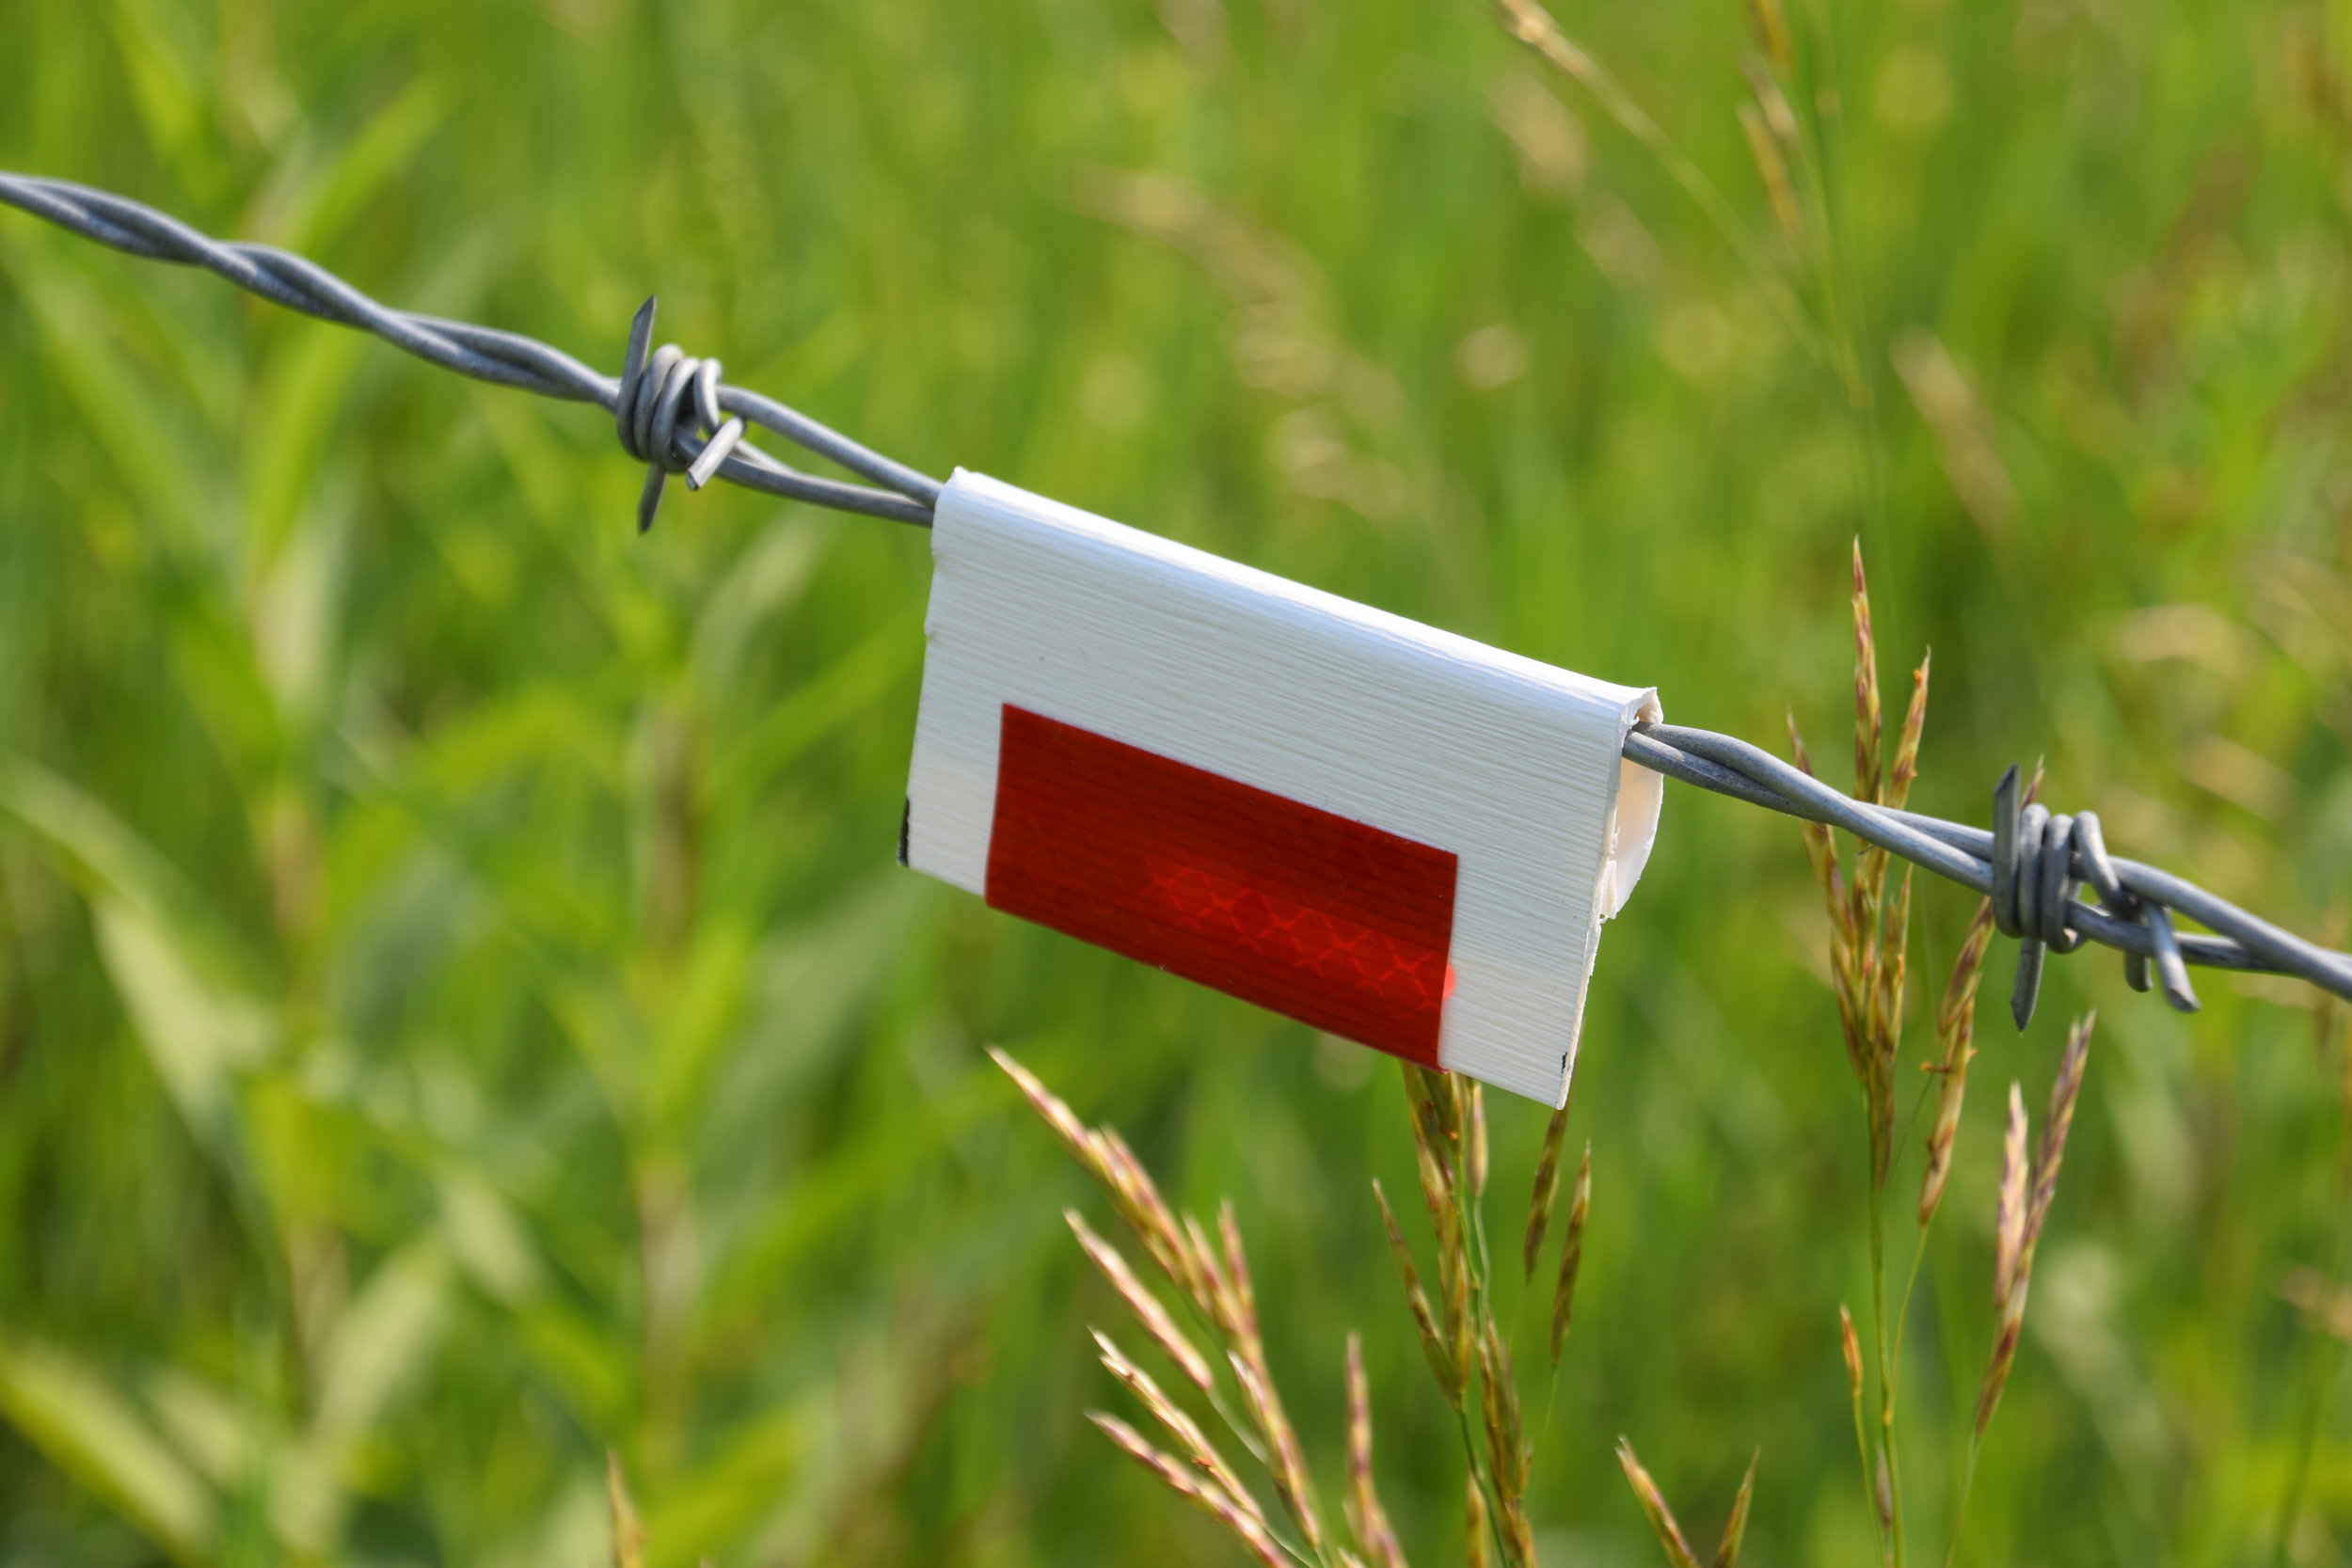 Simple reflectors on fences can increase visibility for wildlife.